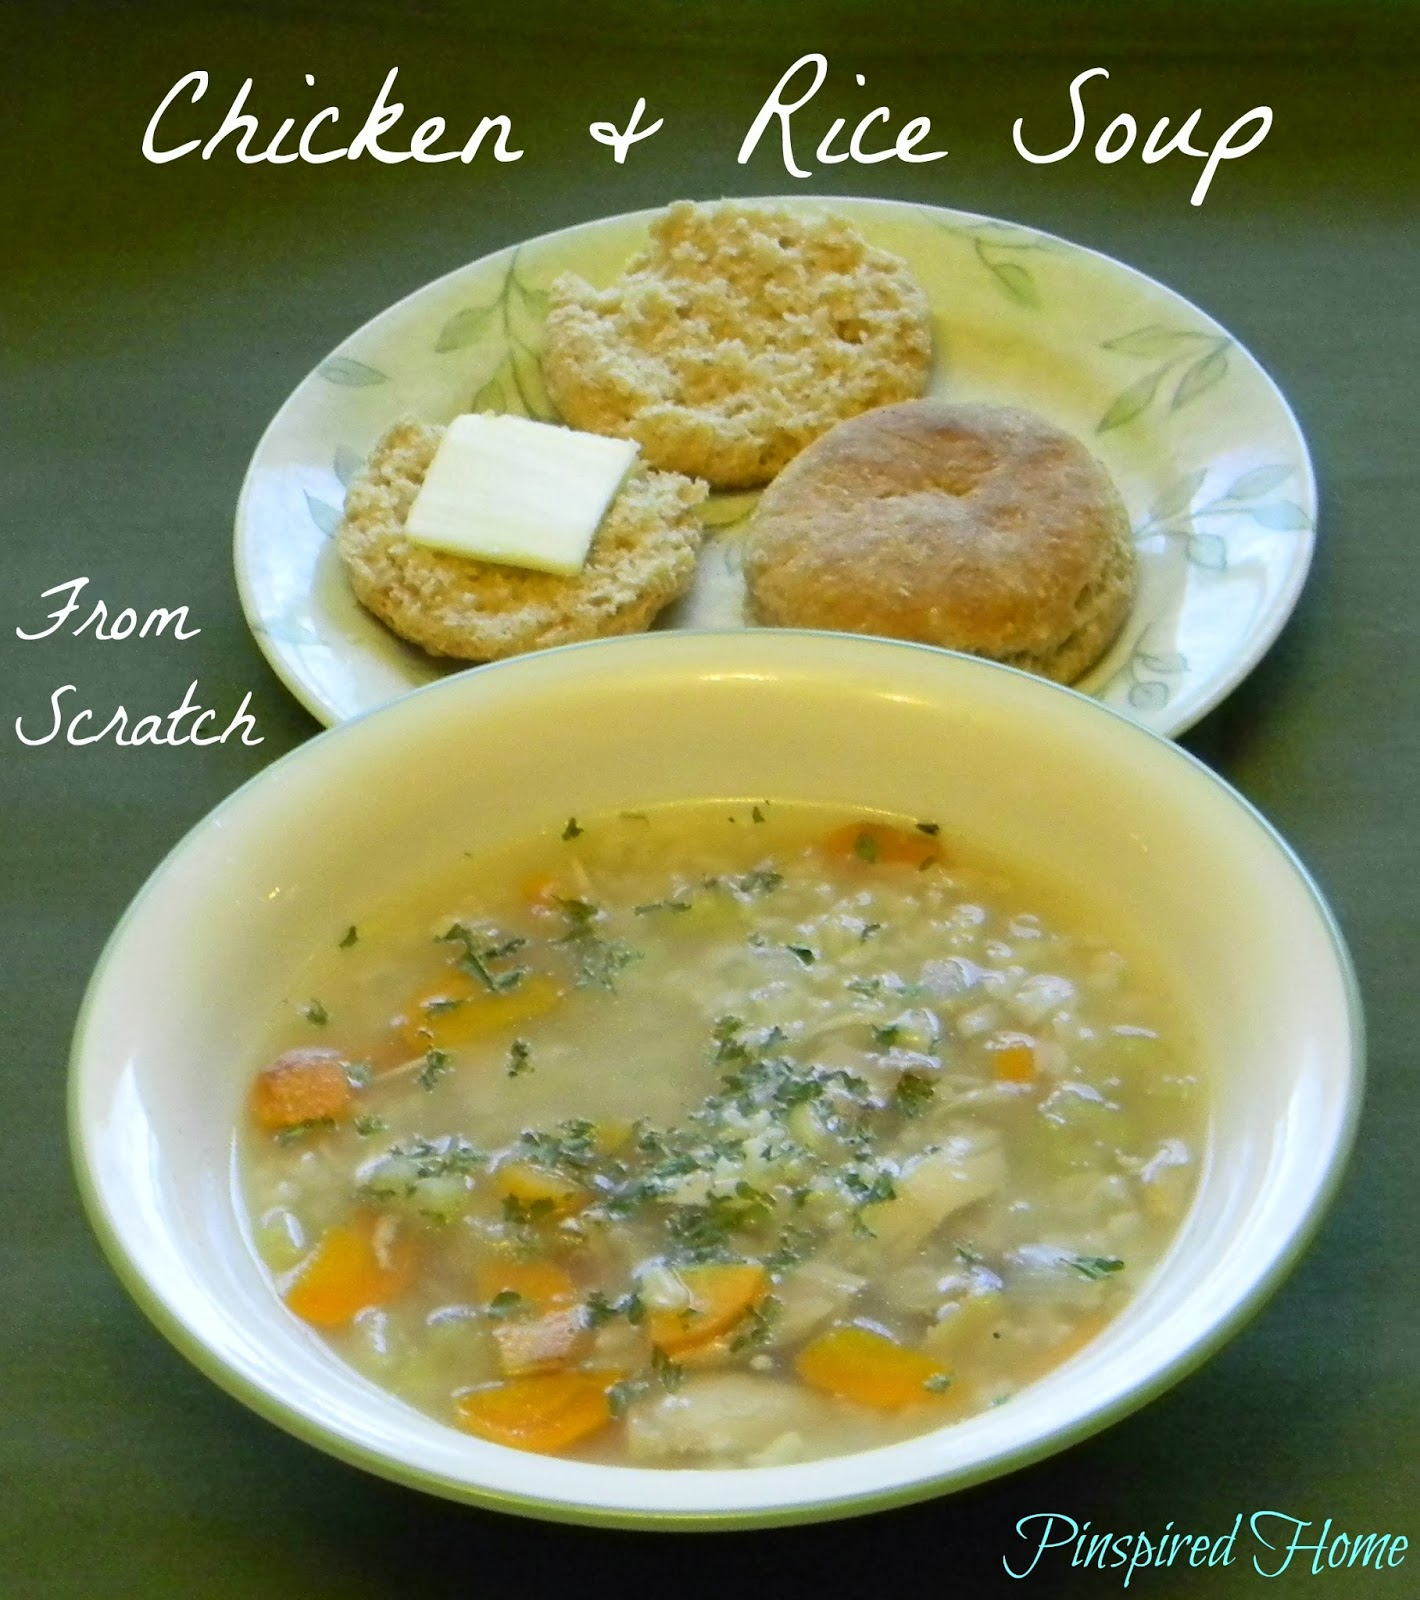 http://pinspiredhome.blogspot.com/2013/11/chicken-and-rice-soup-from-scratch.html